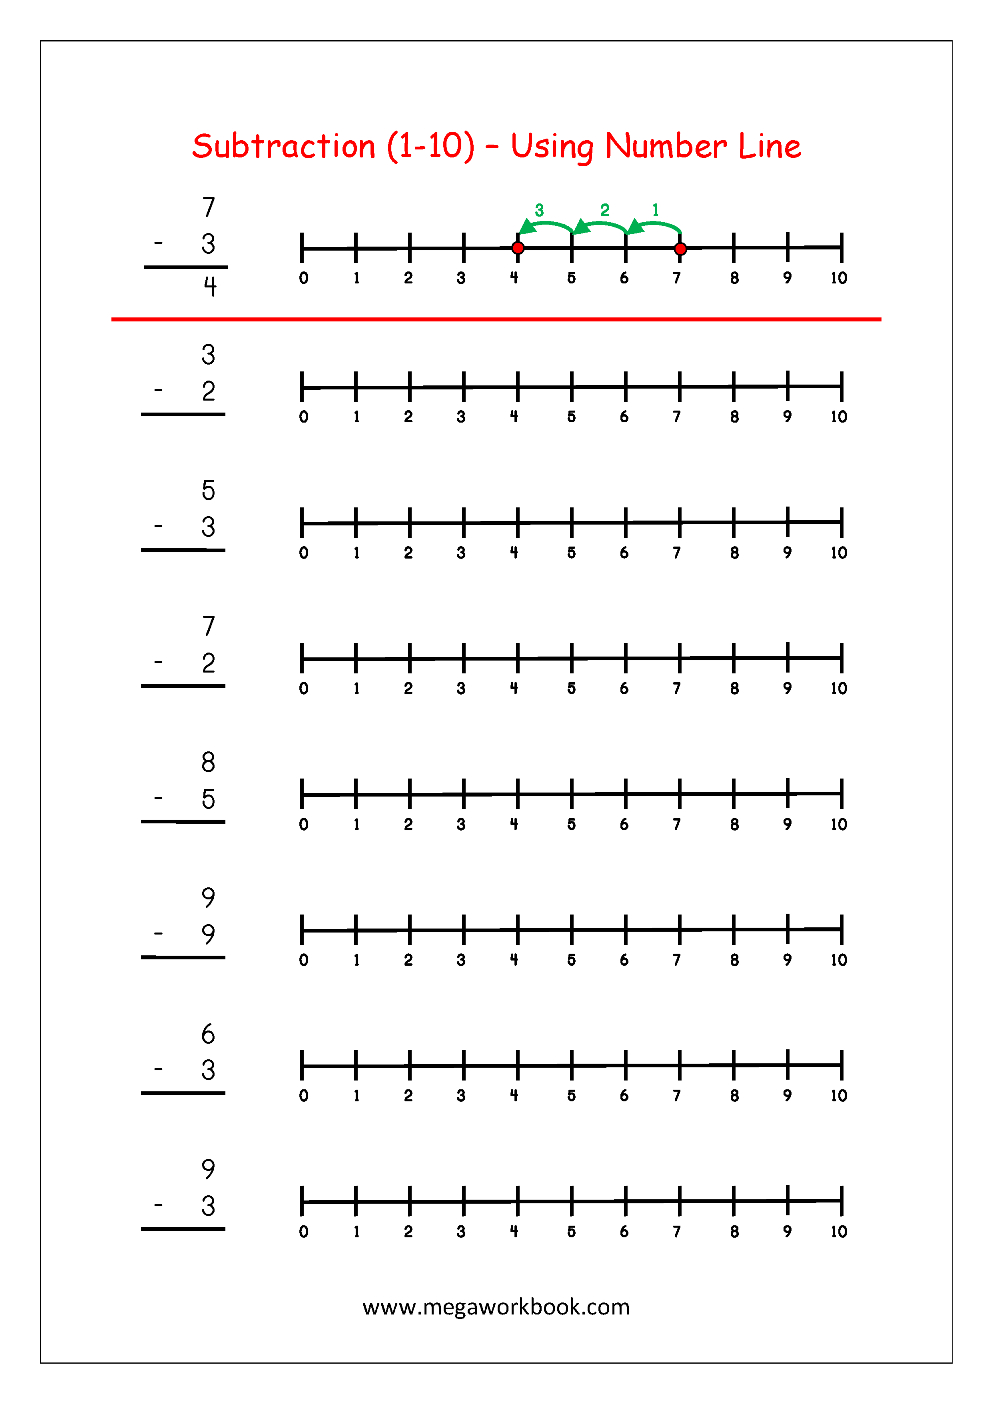 Subtraction Using Number Line | Maths Worksheets For Kindergarten - Free Printable Number Line For Kids